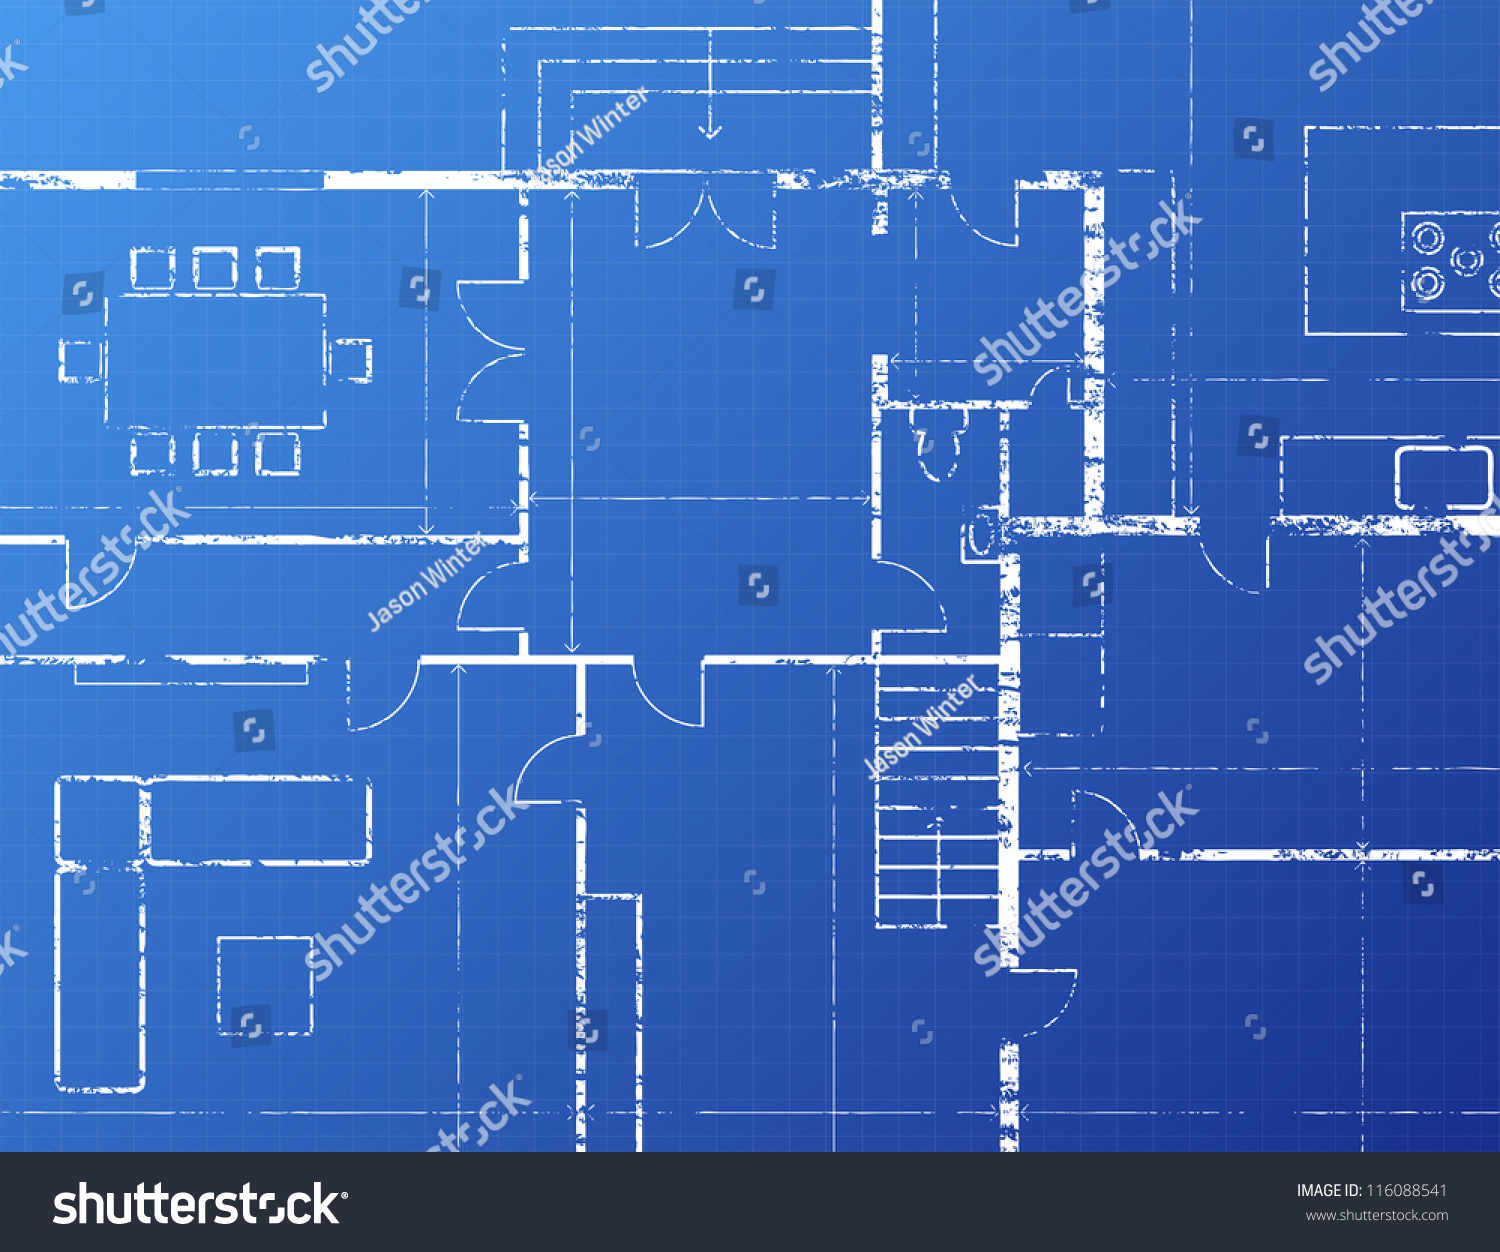 Grungy architectural blueprint illustration on blue stock vector grungy architectural blueprint illustration on blue background malvernweather Images